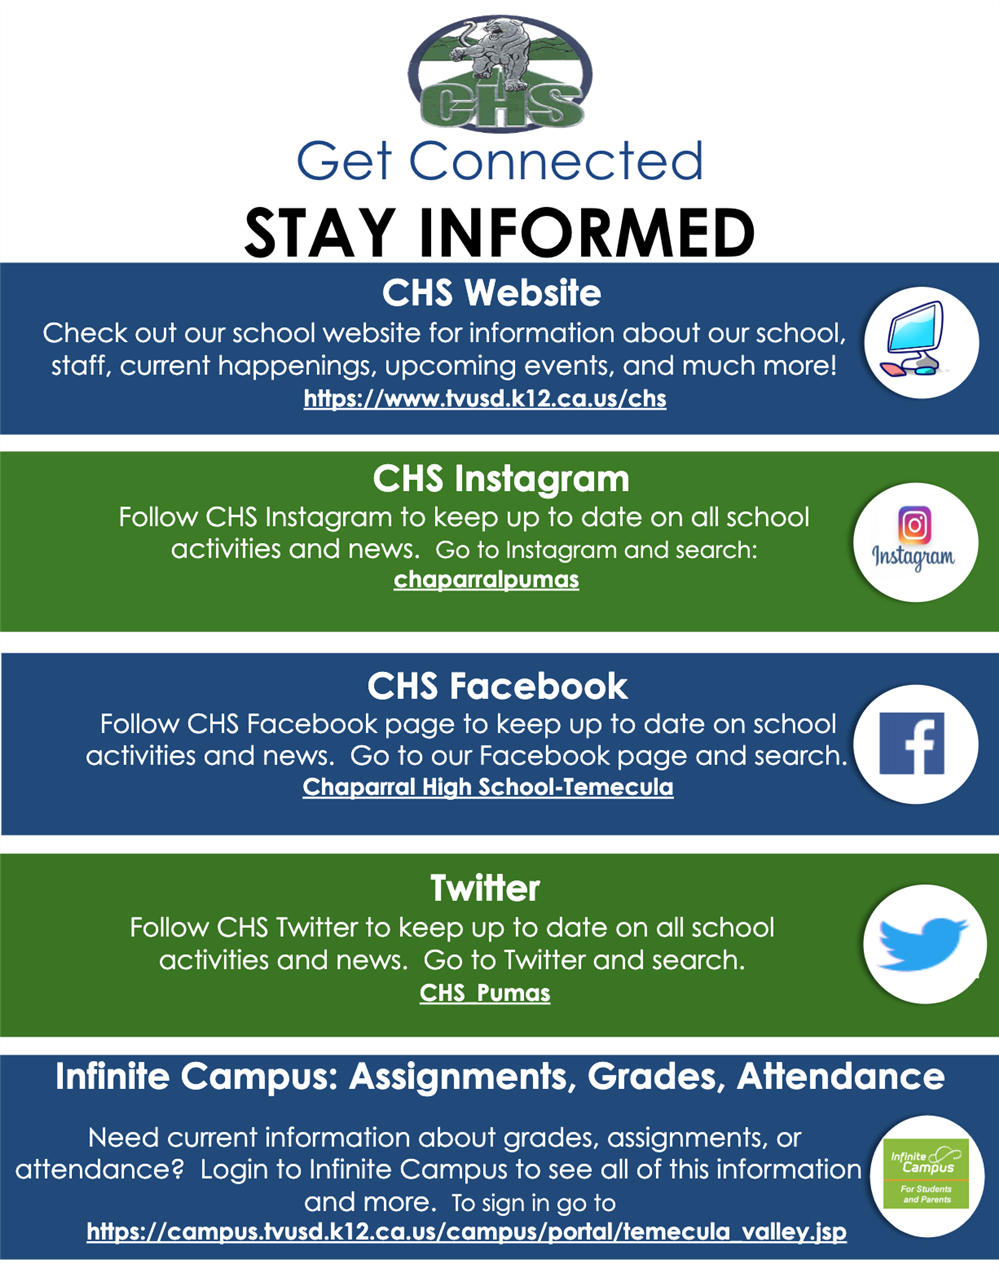 Get Connected with CHS!